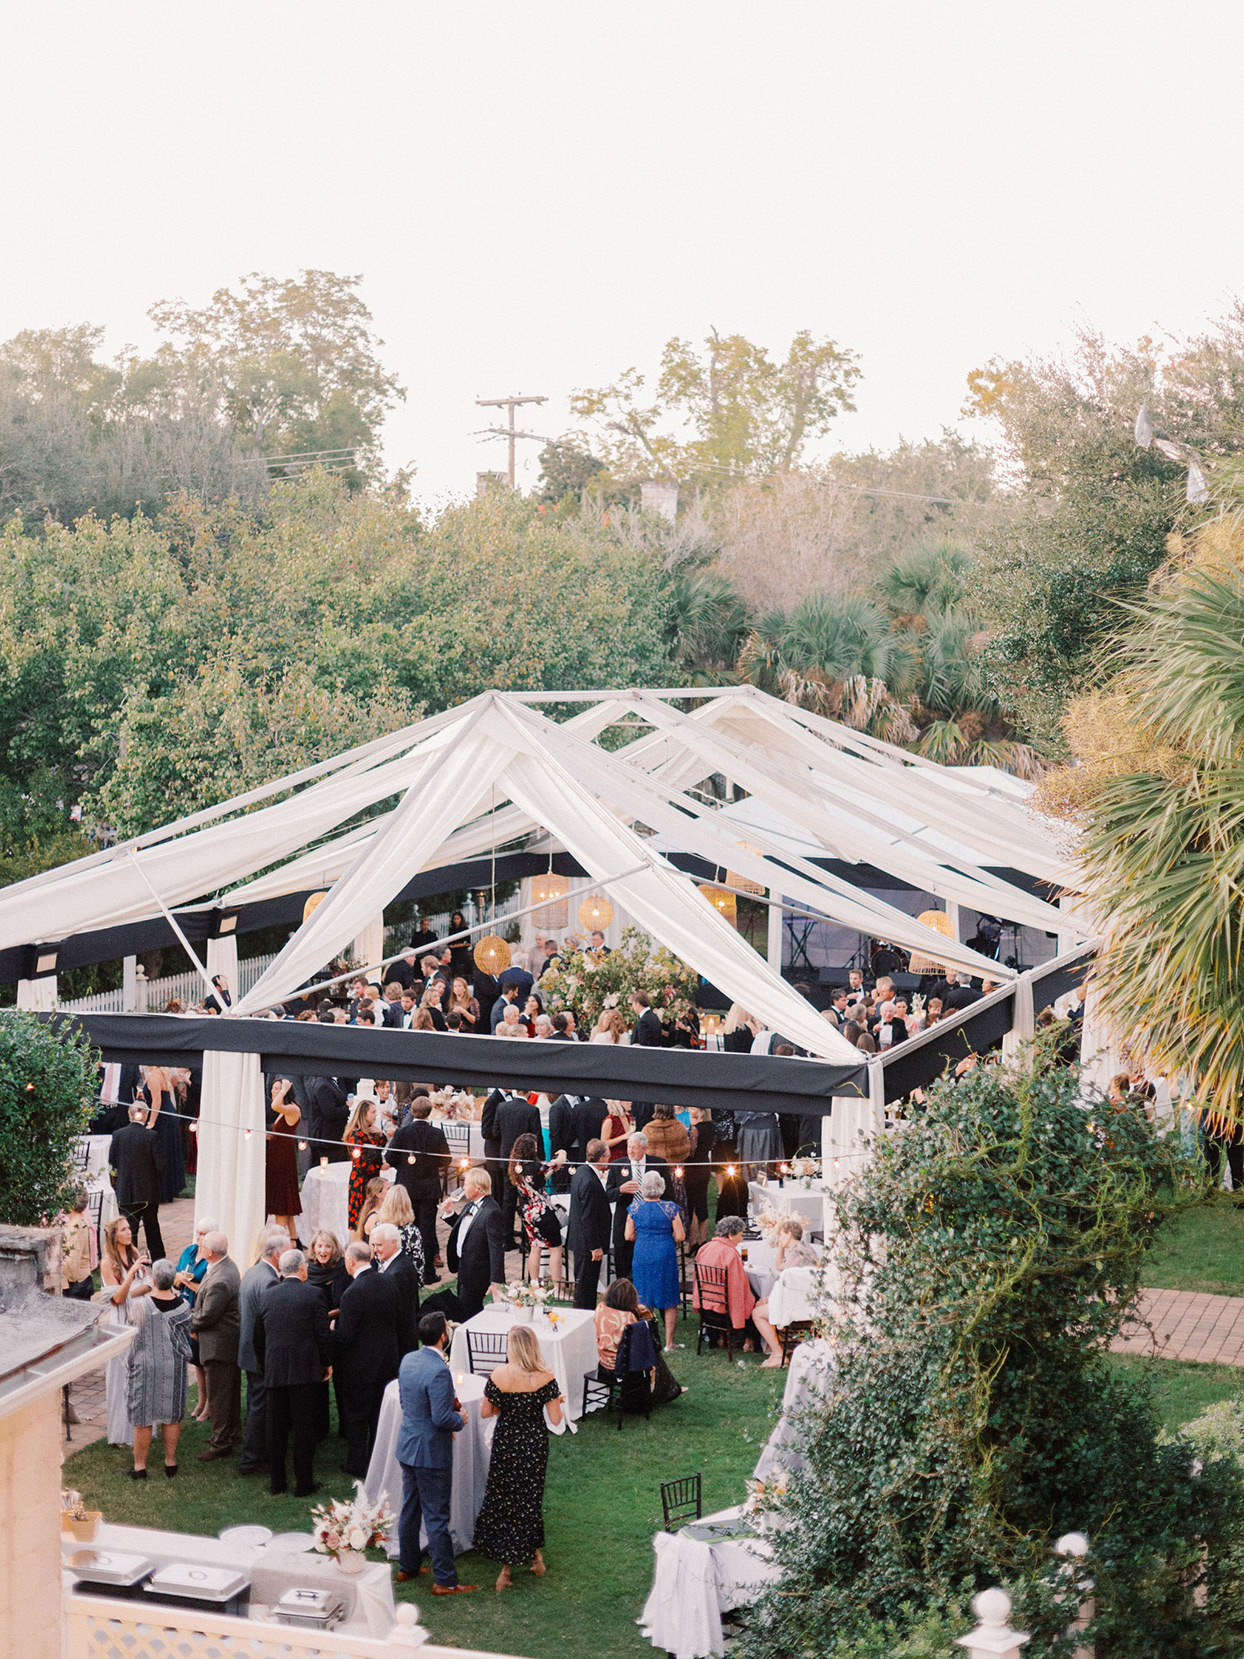 megan parking wedding tent filled with mingling guests